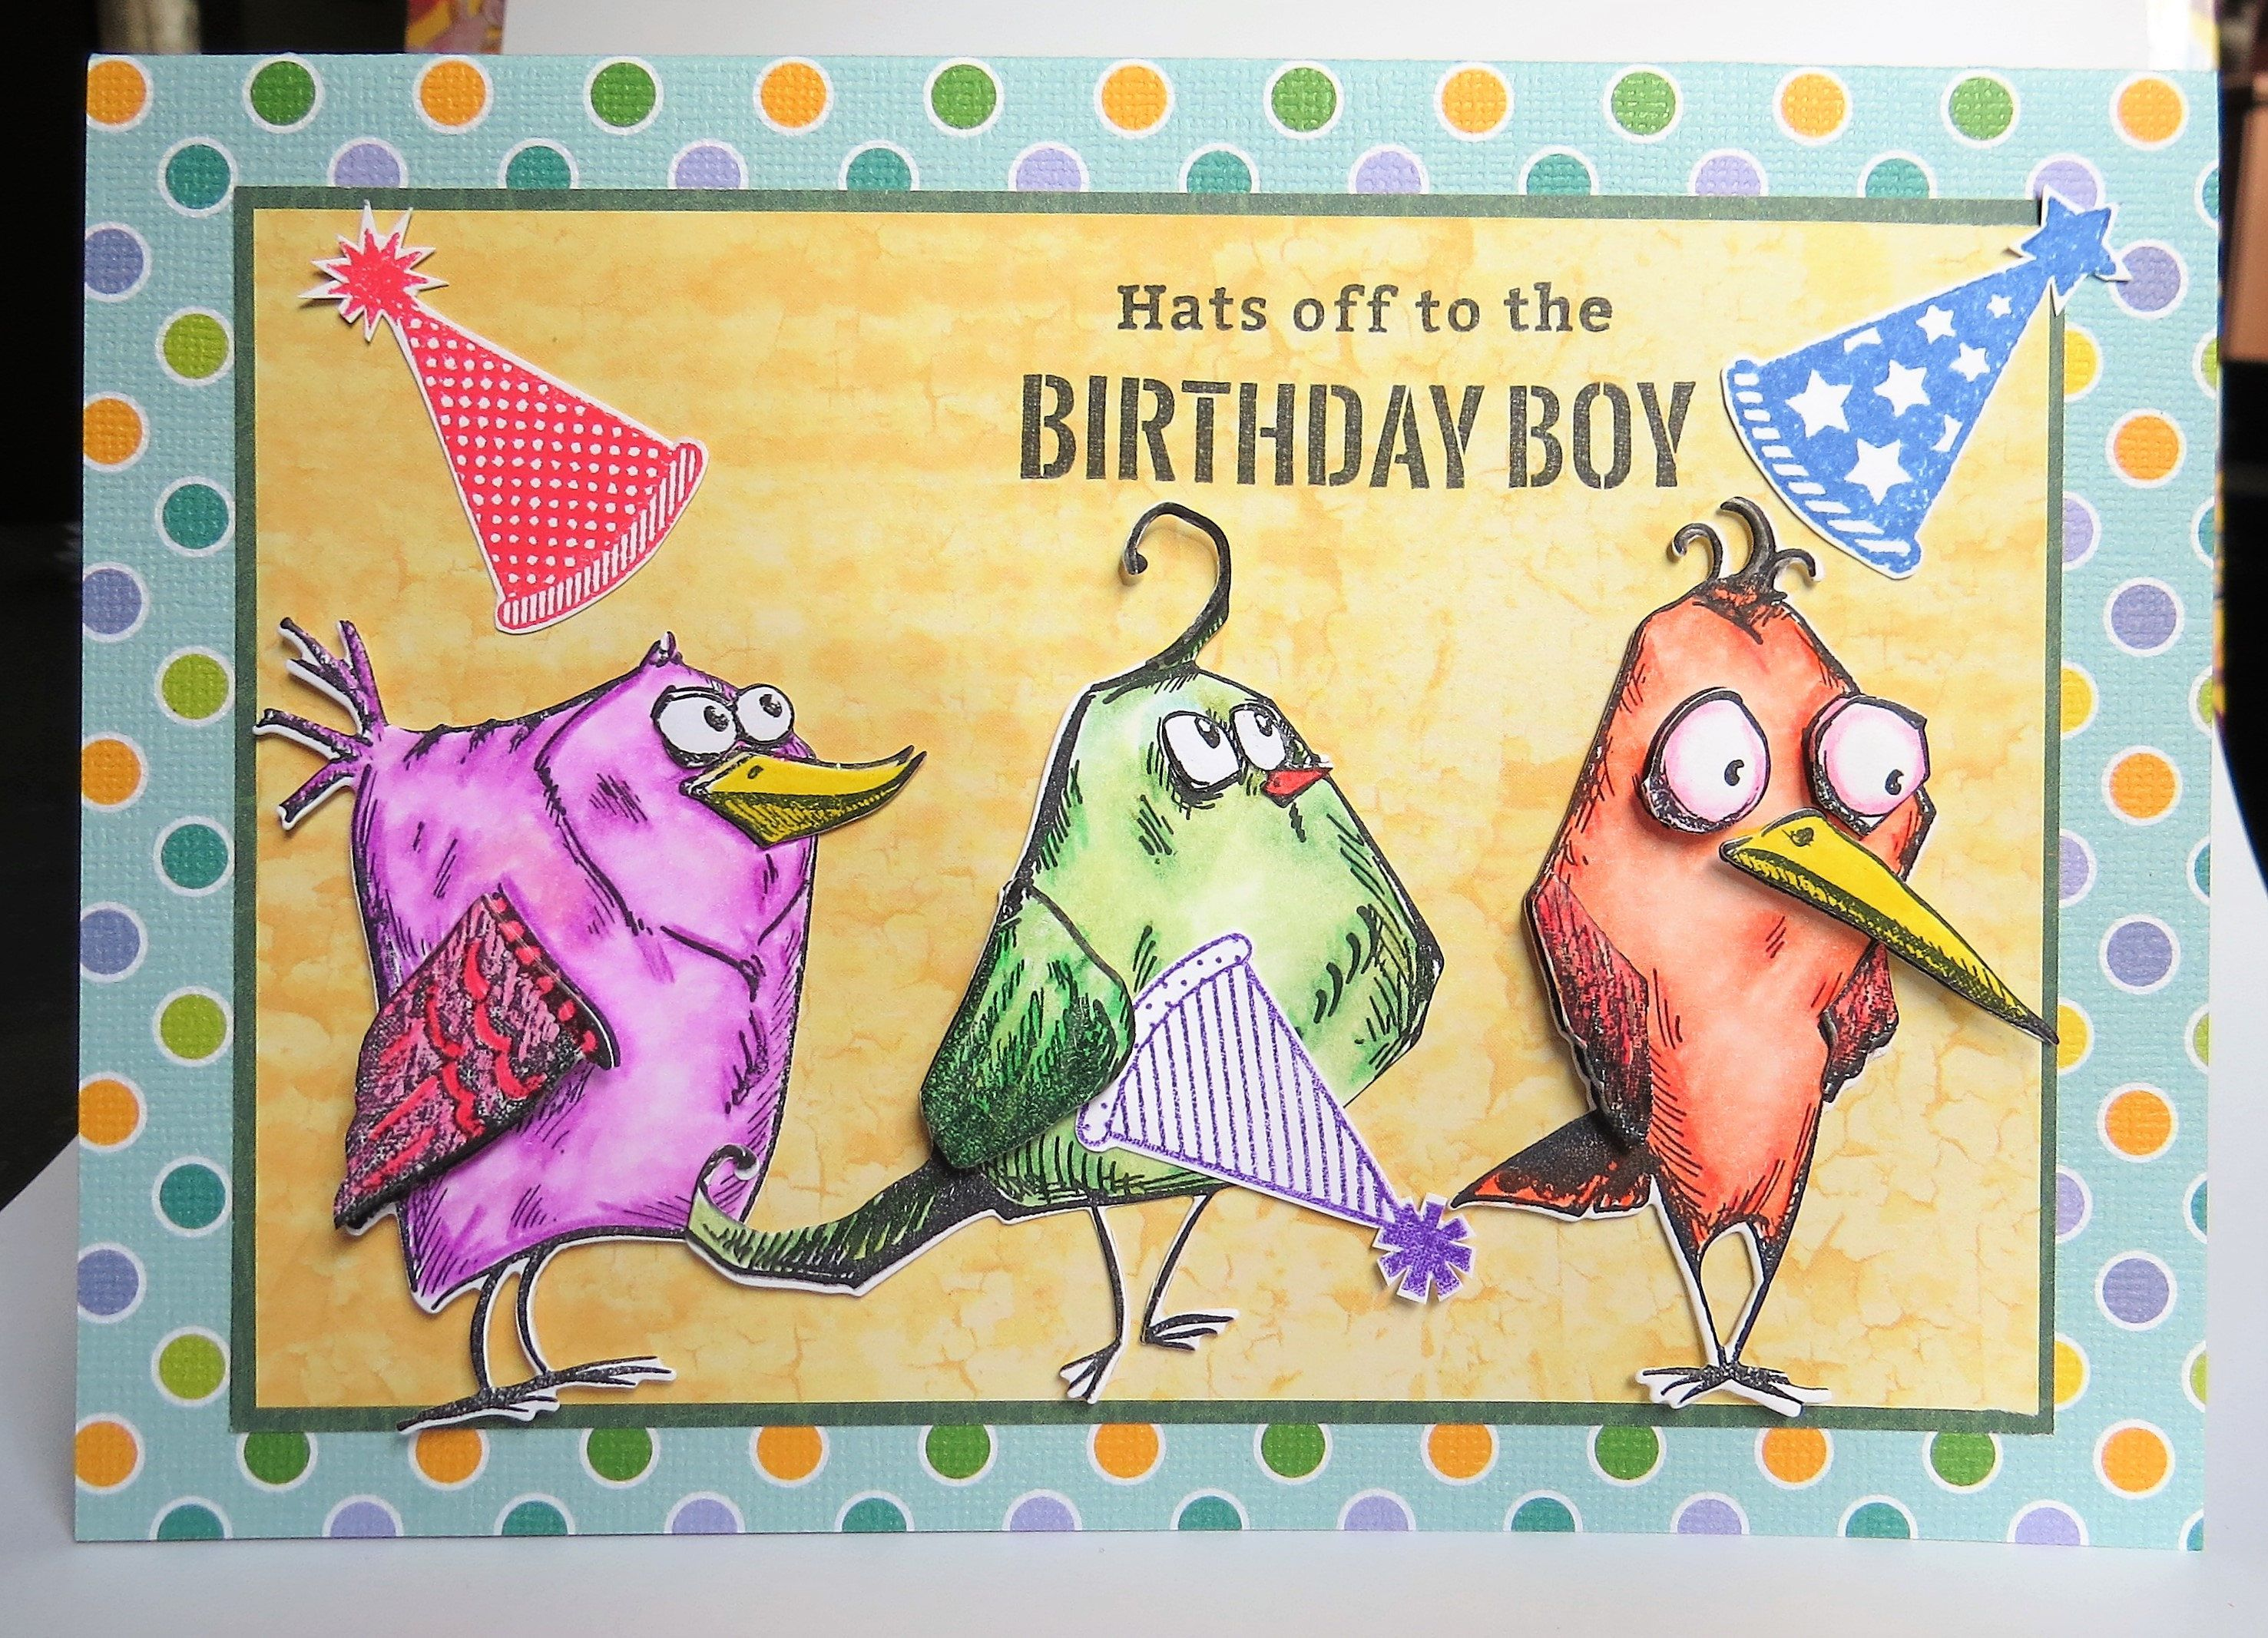 Goofy Birds Birthday Boy Card Funny Hats Off To Girl Silly Colorful Bird For Adults Kids Co Worker Friend By ACardOccasion